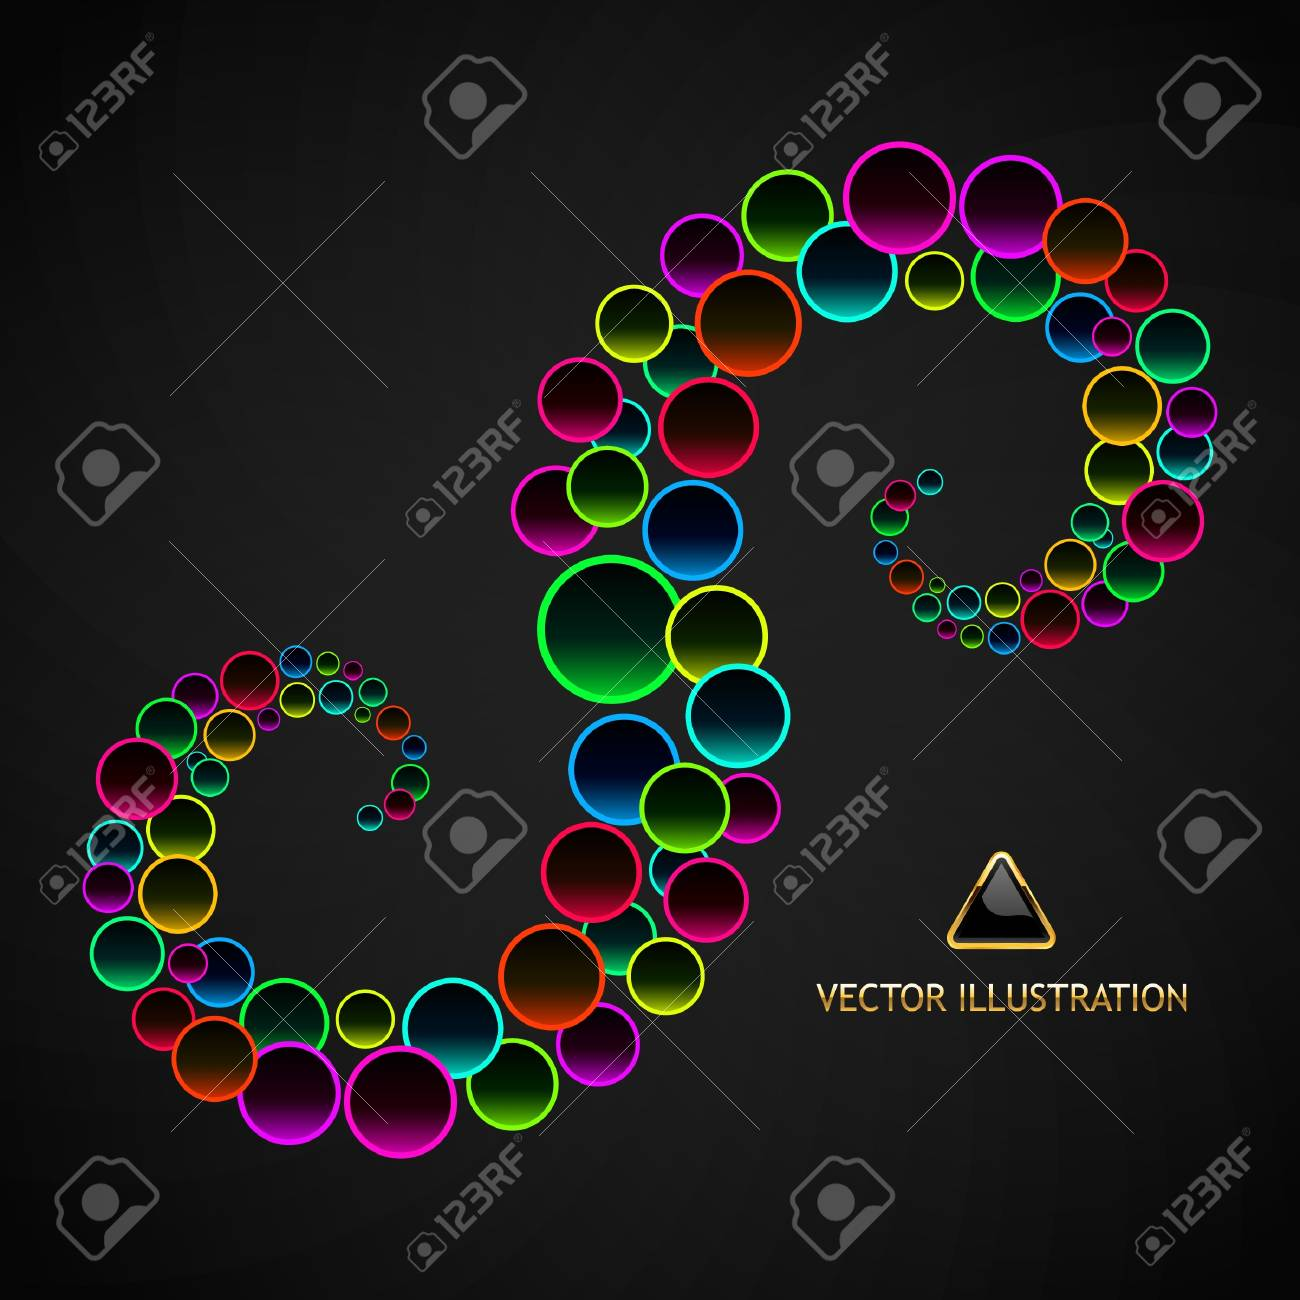 Colorful abstract background. Stock Vector - 8891267